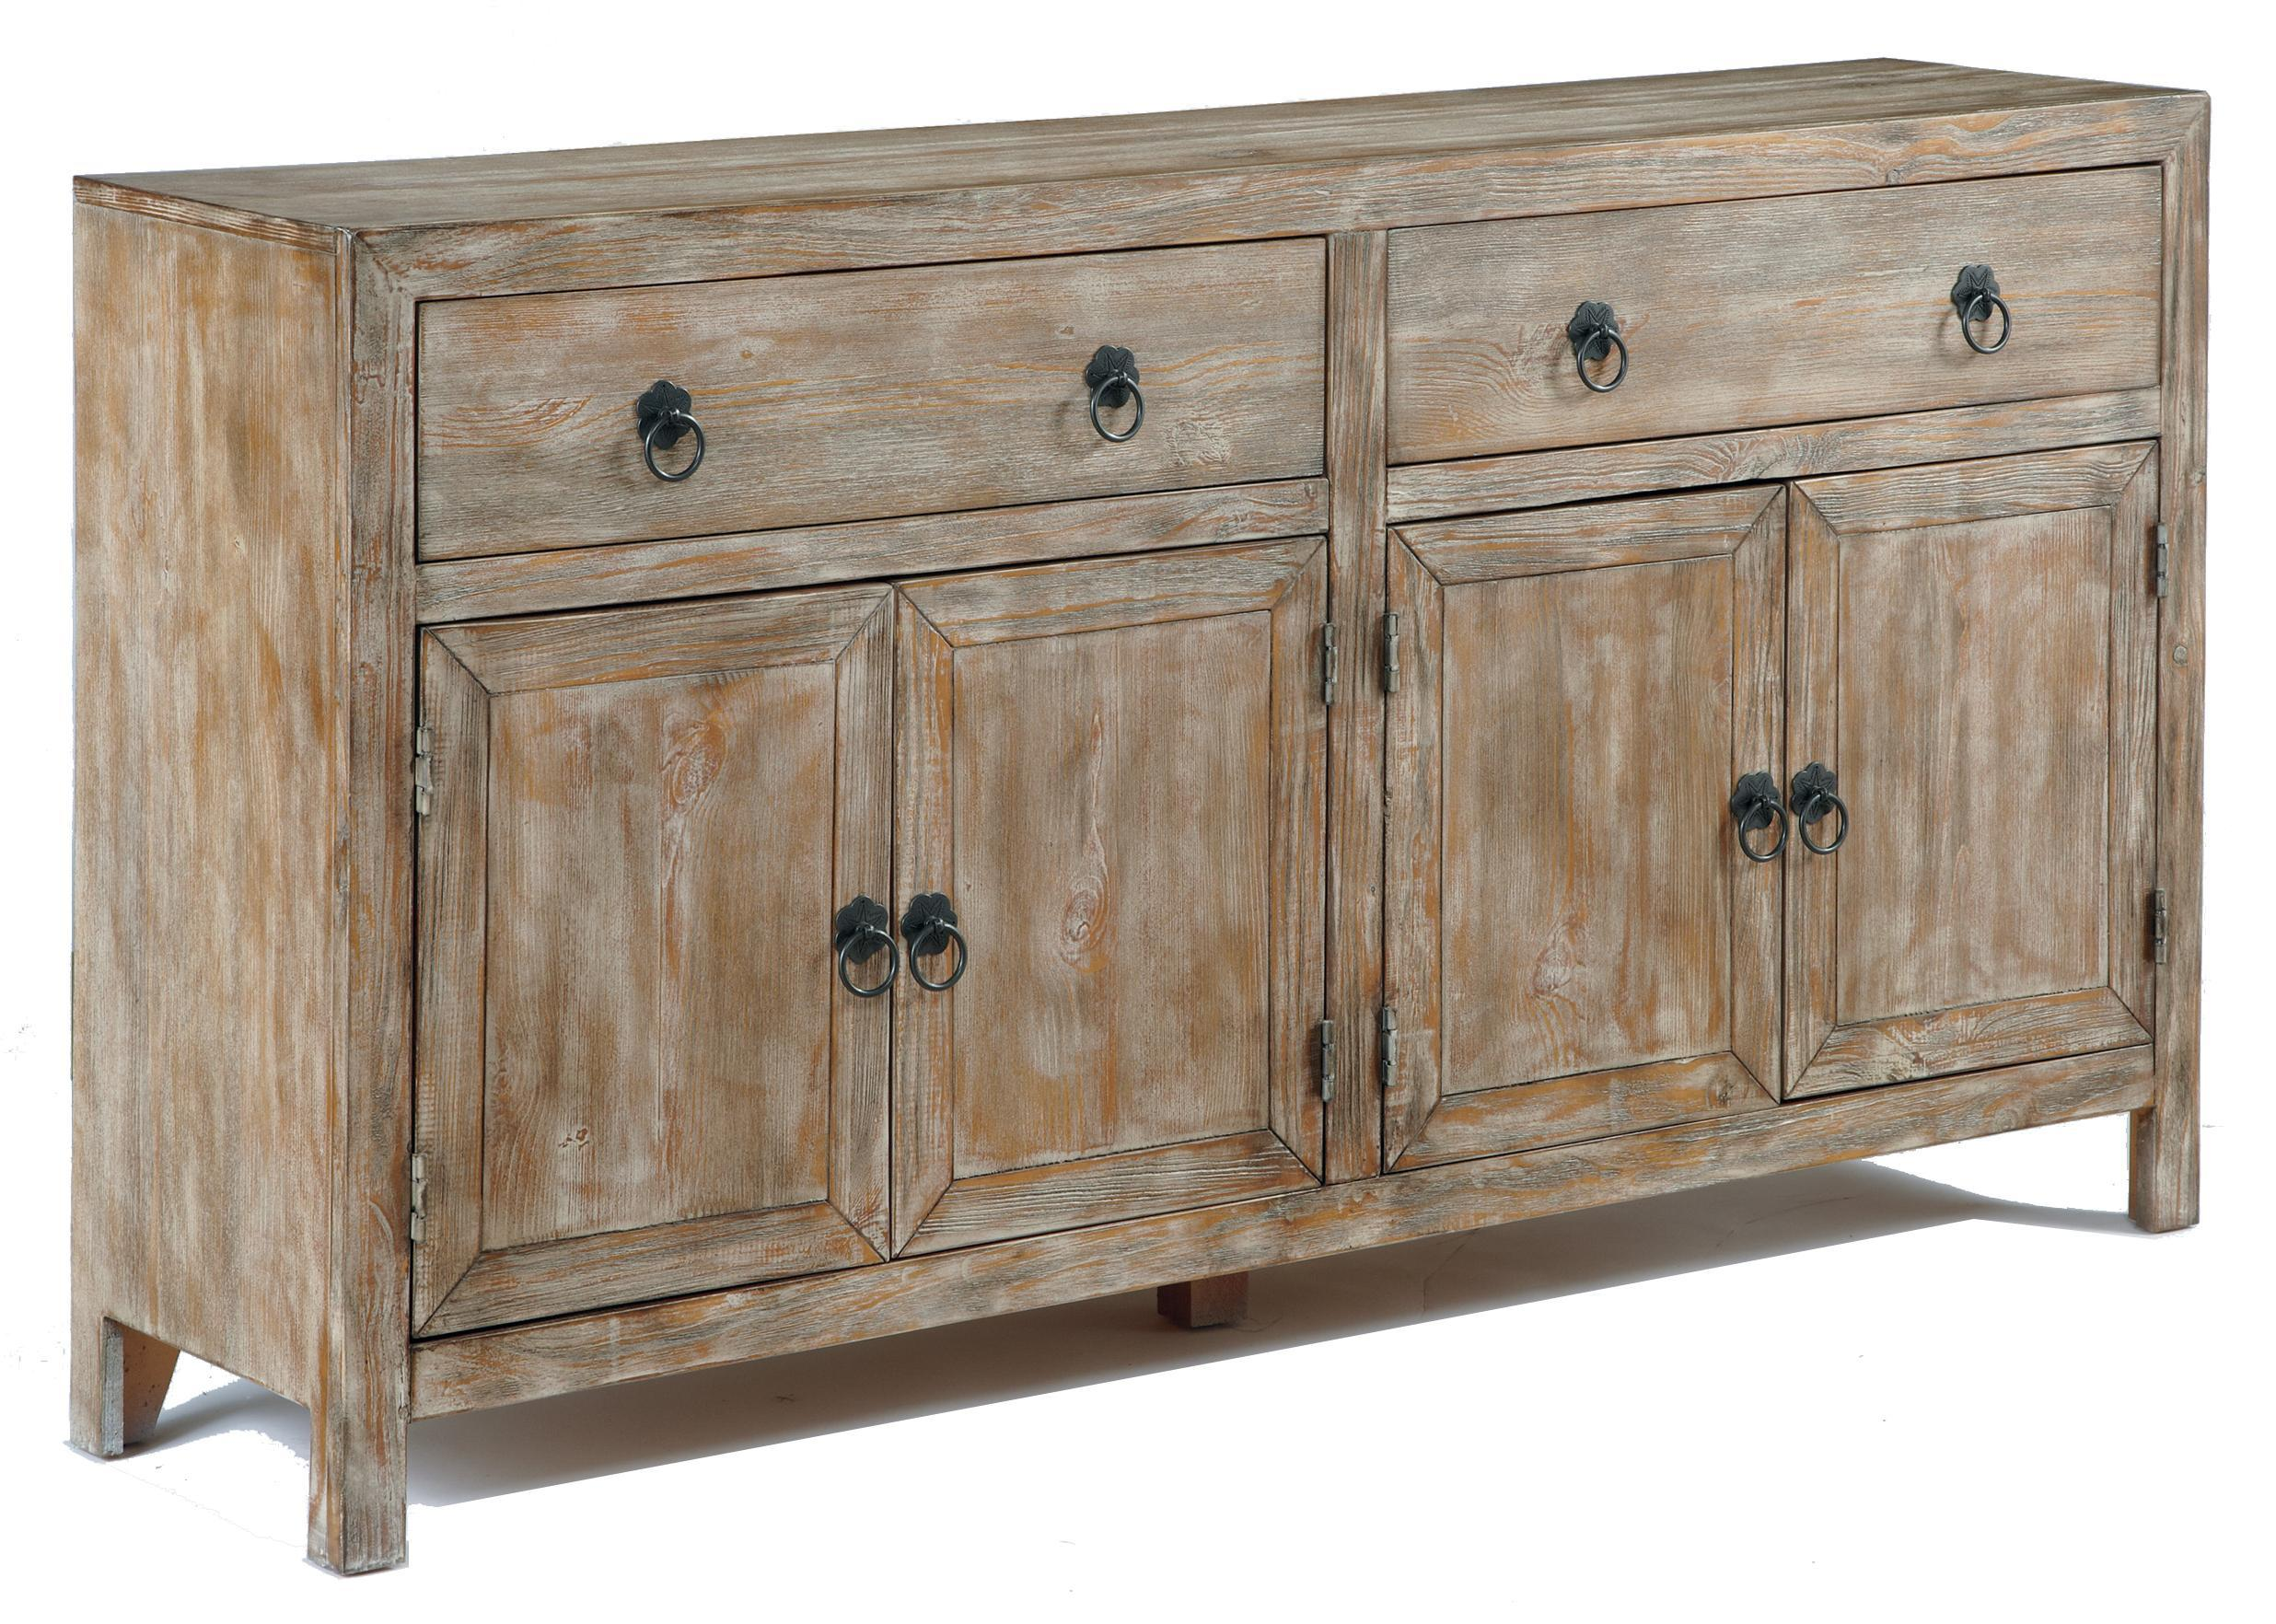 Signature Design by Ashley Rustic Accents Rustic Accent